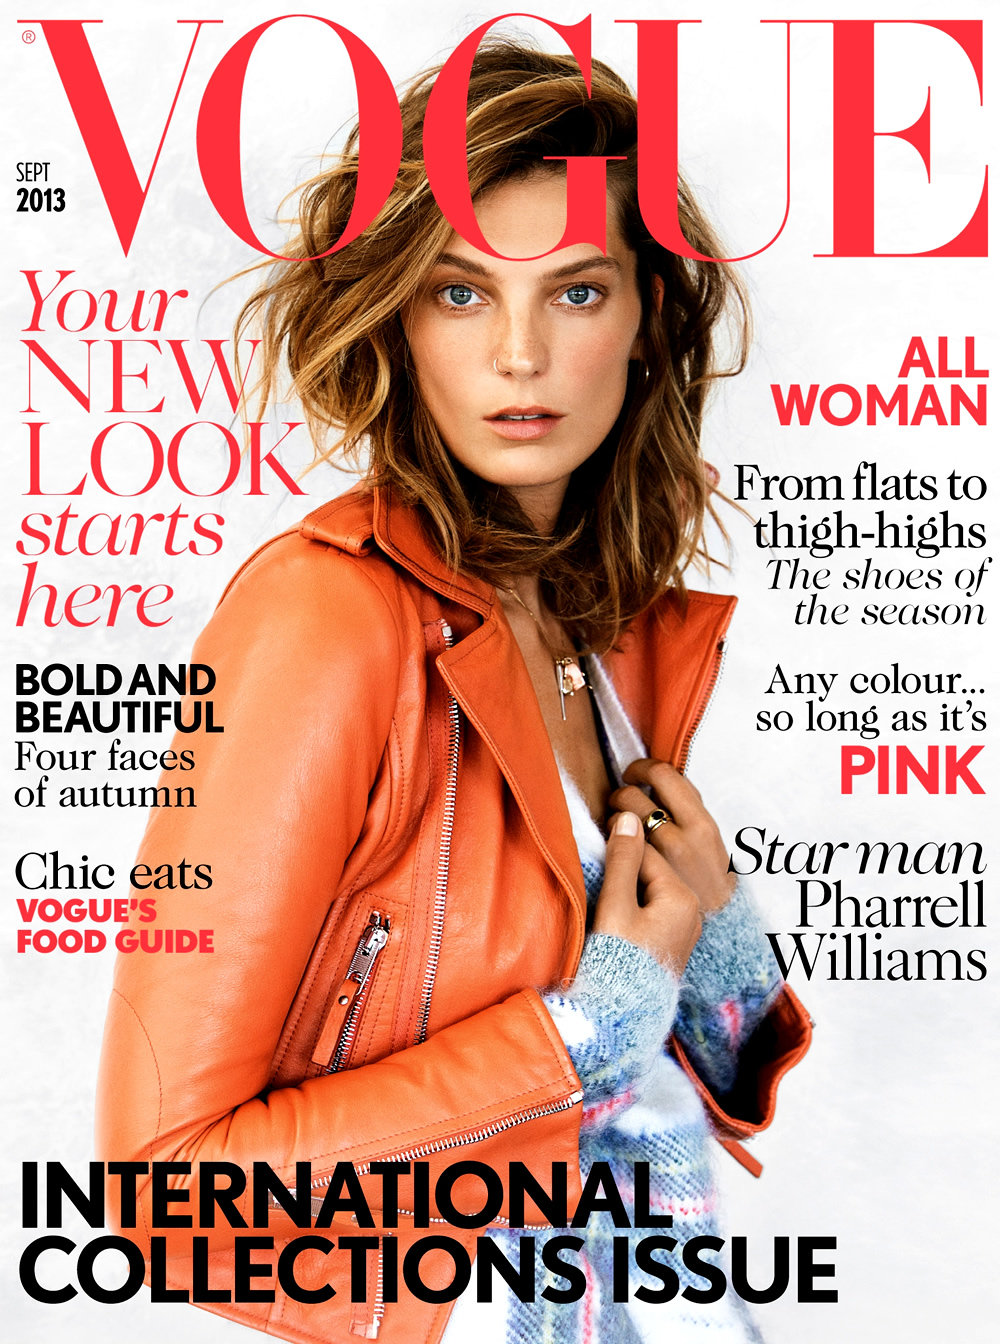 Top 10 Fashion Magazines - Elle, Harper s BAZAAR, Vogue, Marie 52